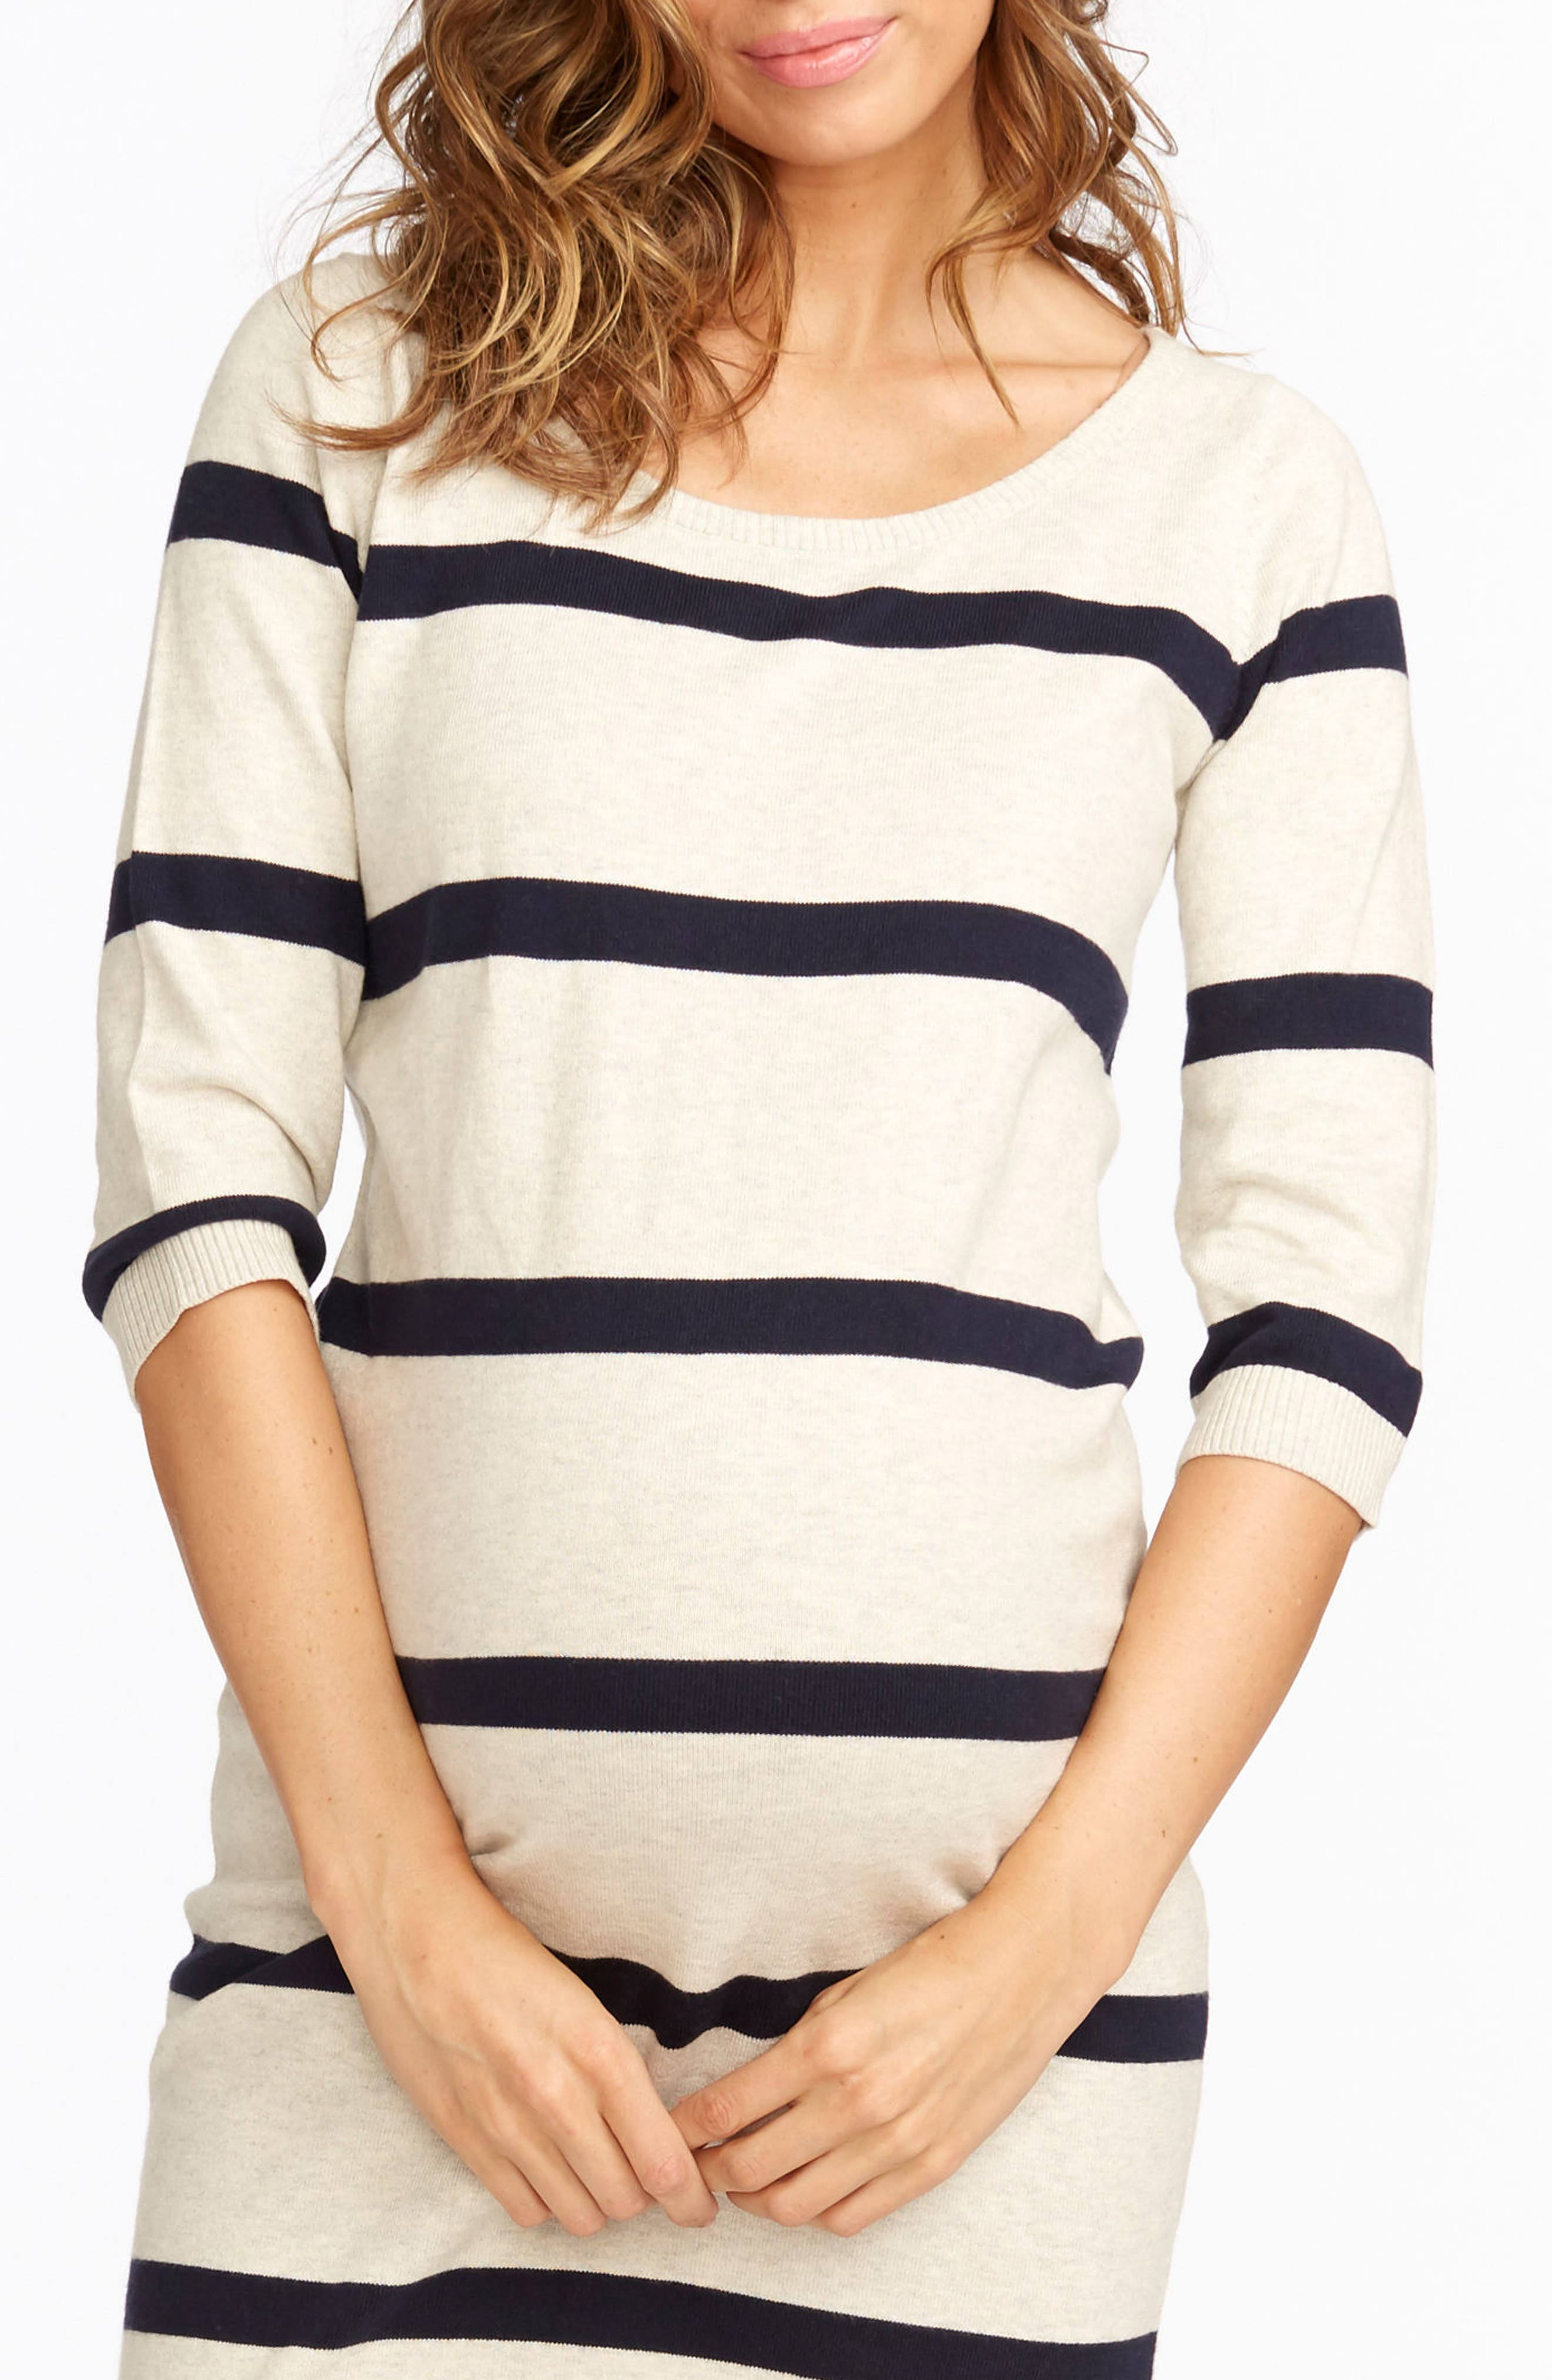 Alternate Image 2  - Rosie Pope 'Harper' Stripe Maternity Sweater Dress